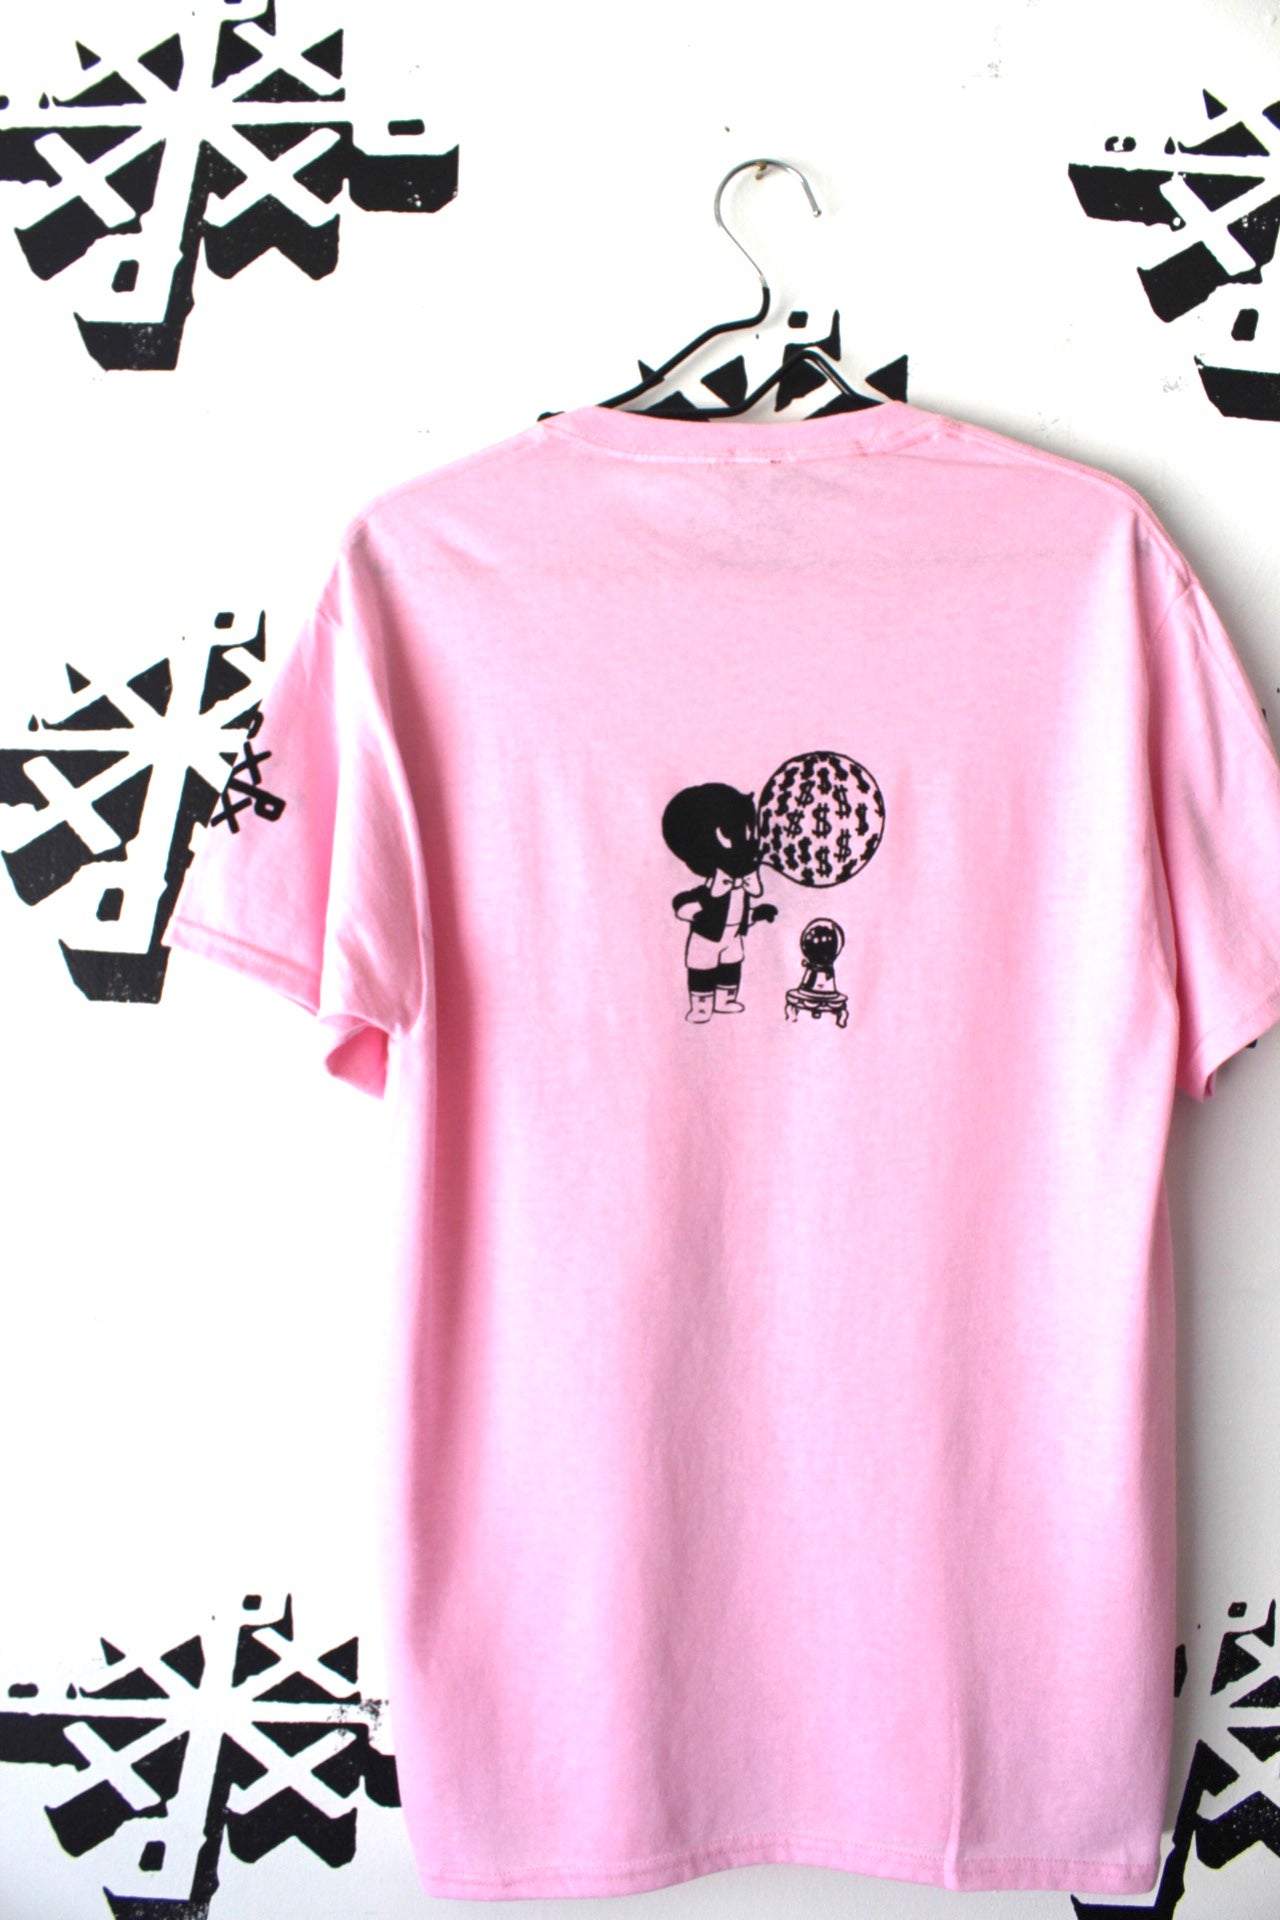 Image of blow up tee in pink